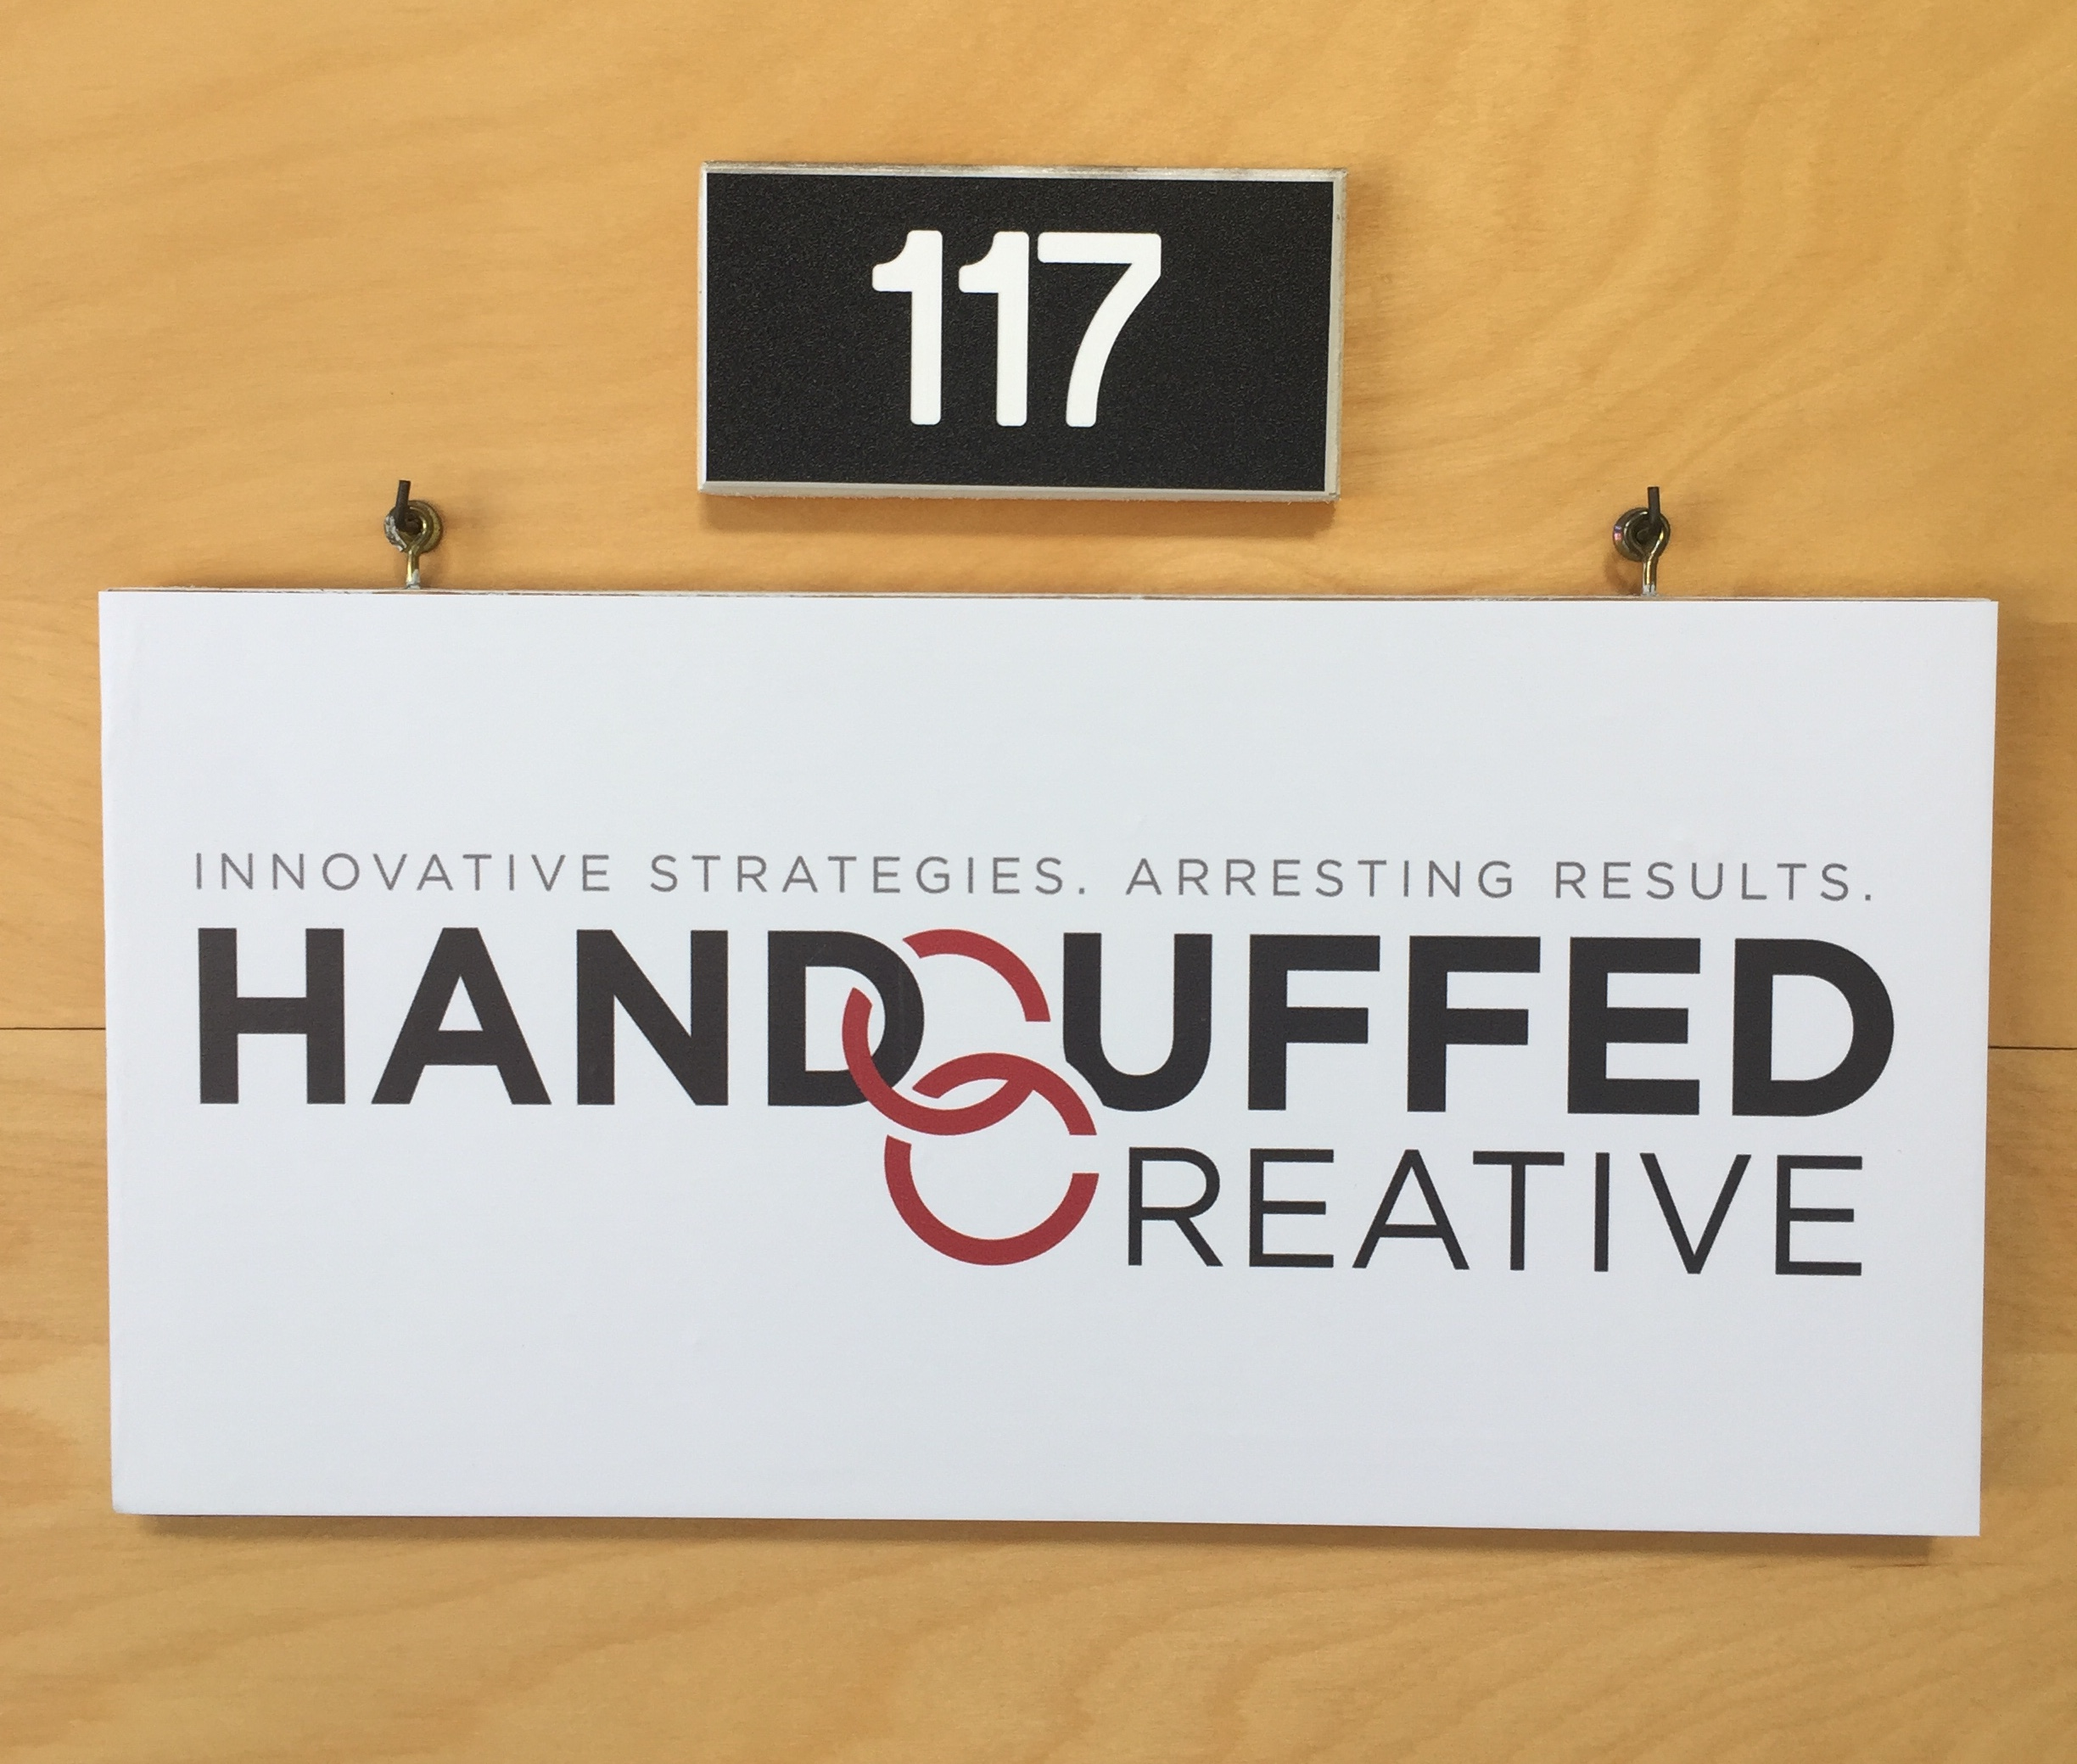 Handcuffed Creative